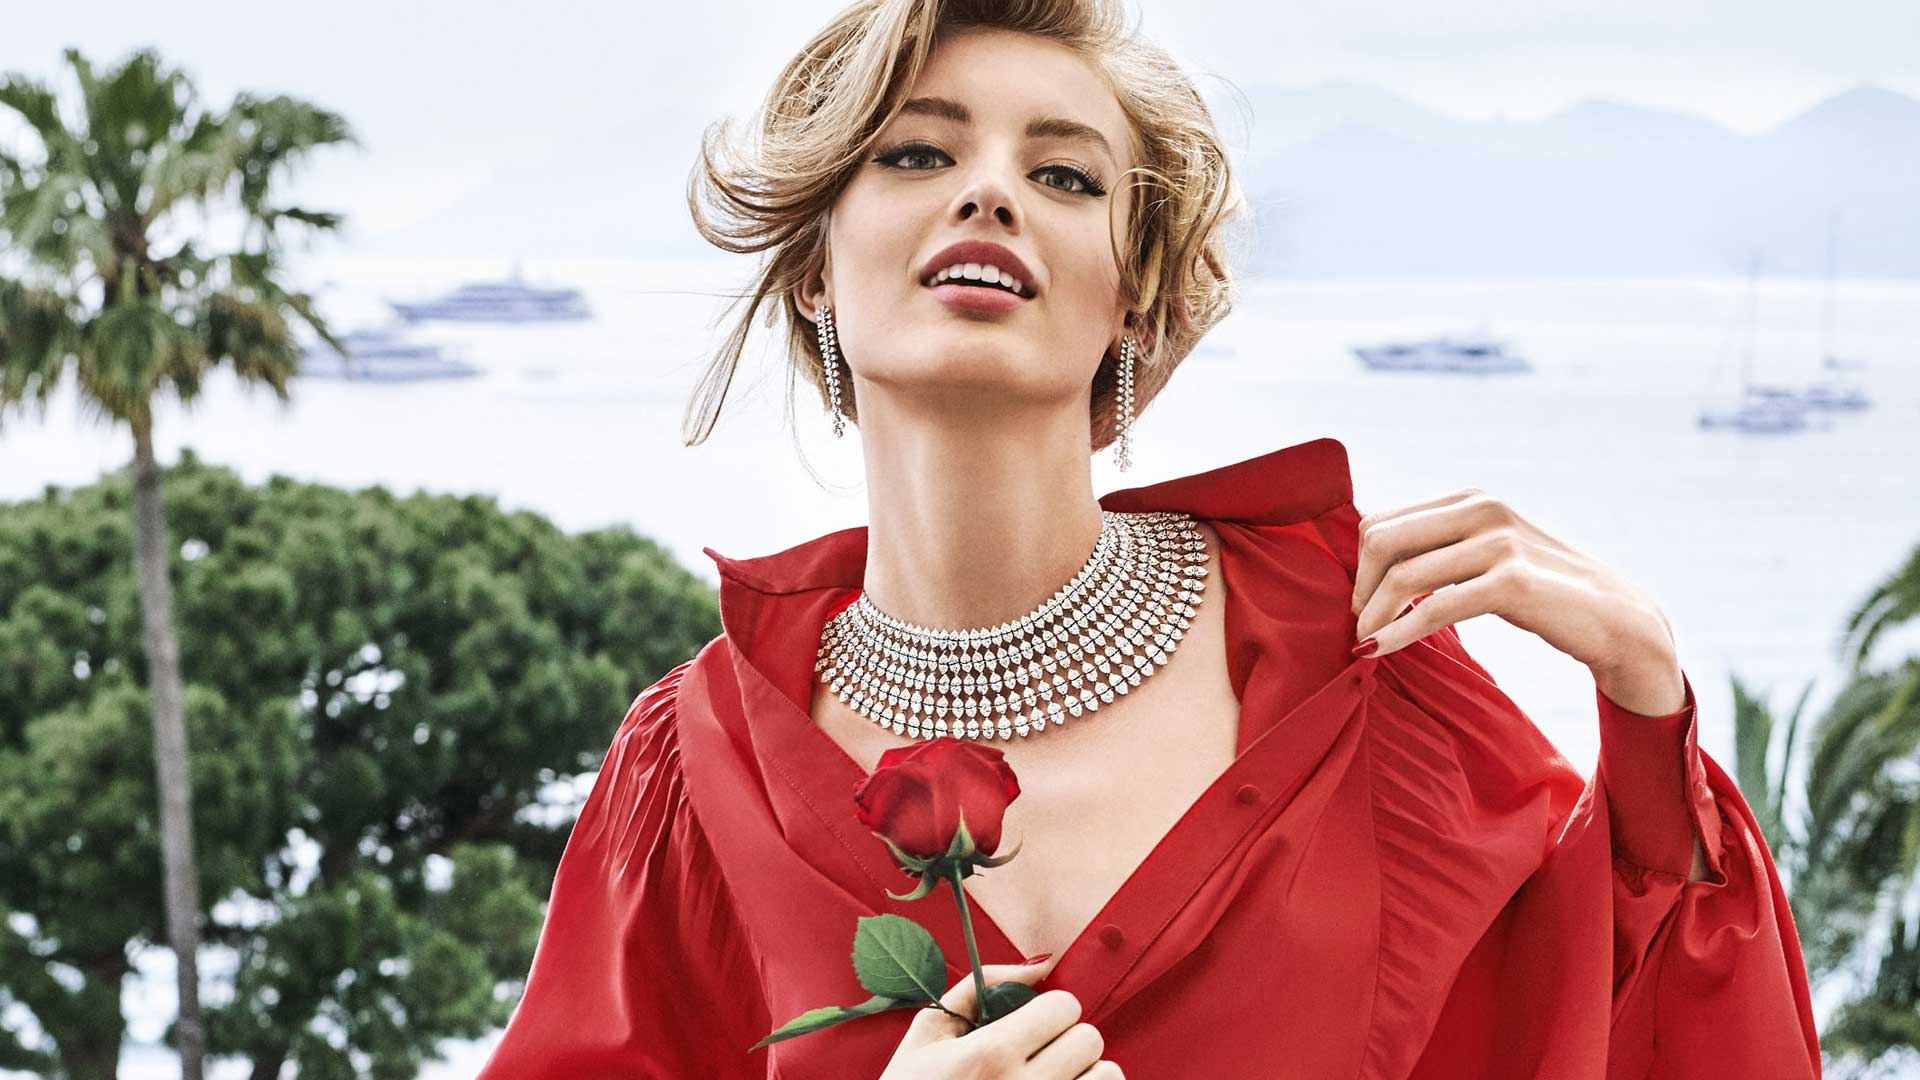 Young blond lady wearing Chopard high jewellery and holding a red rose.